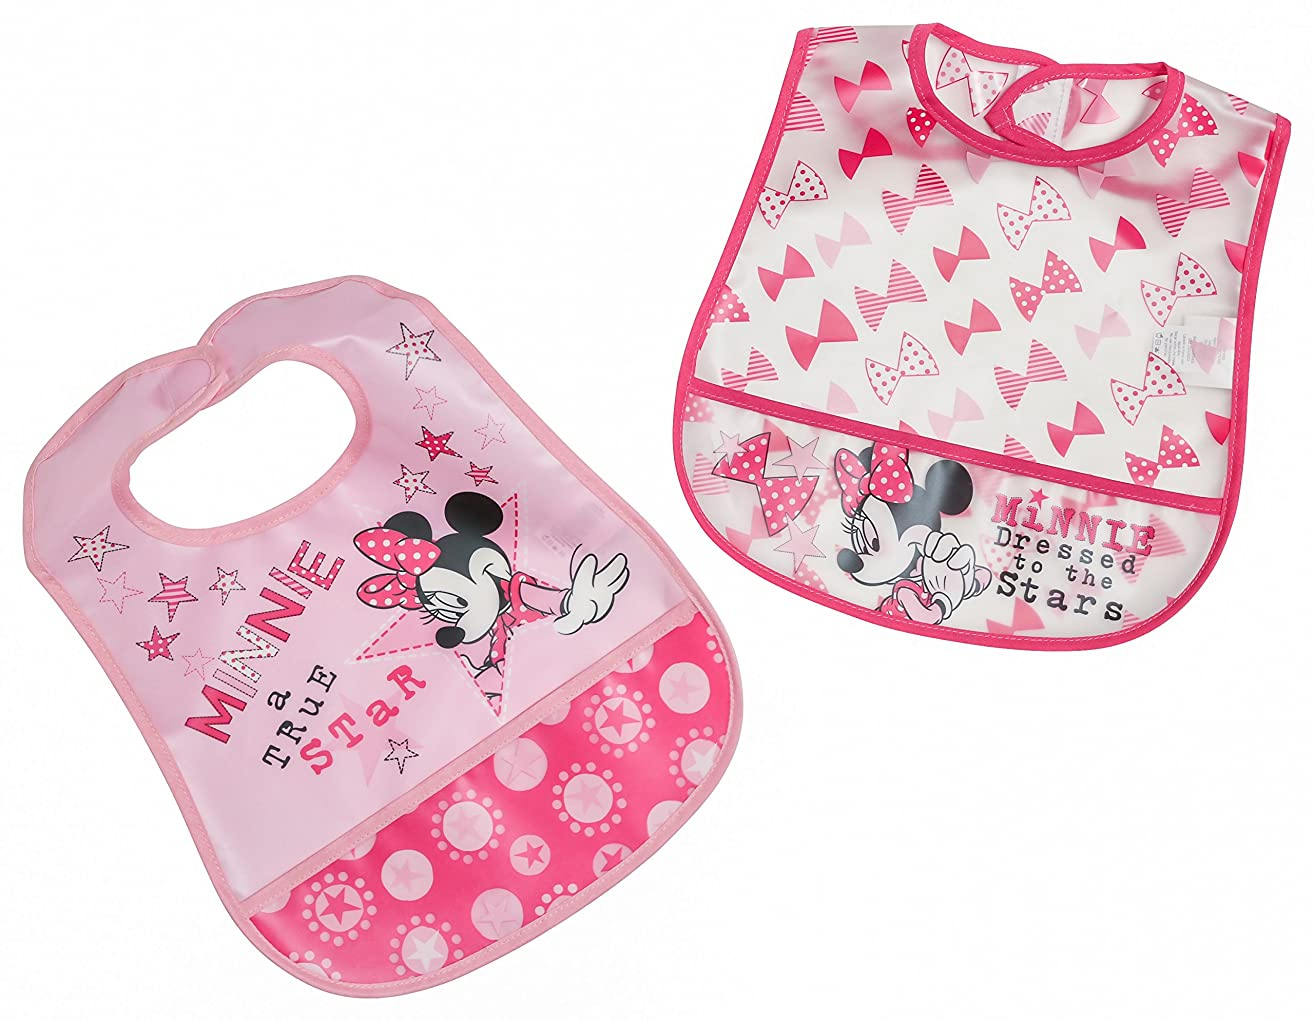 Disney Minnie Mouse 2Piece Printed Frosted Water Proof Peva Bib, Crumb Catcher Pocket